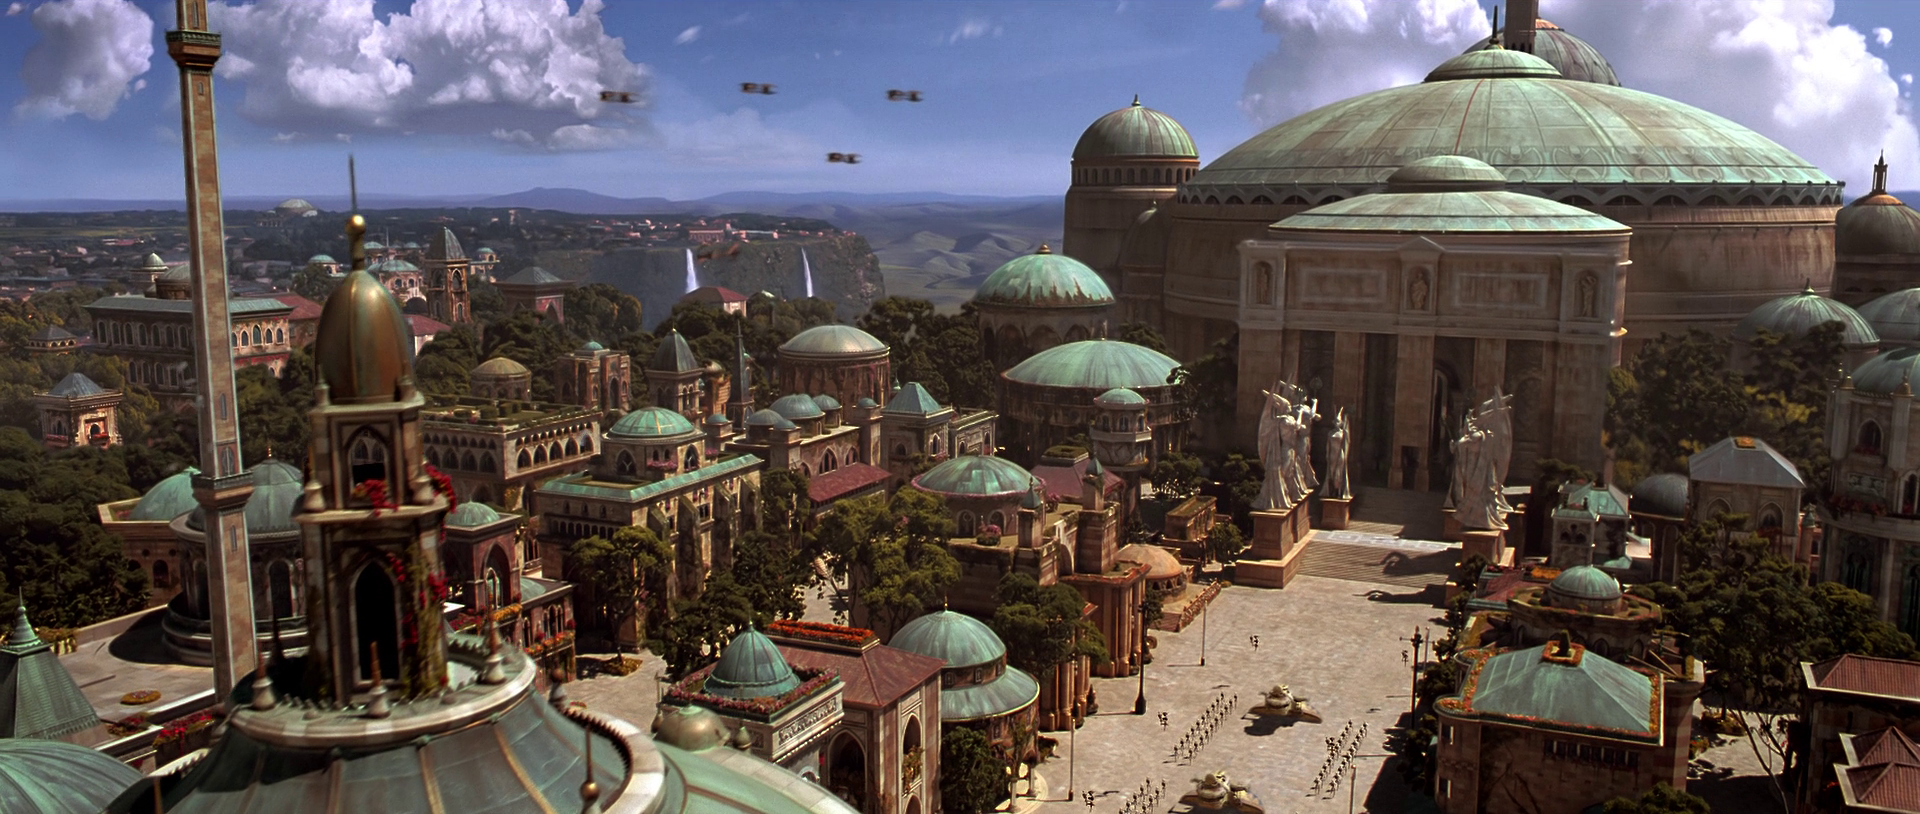 Capture of Theed